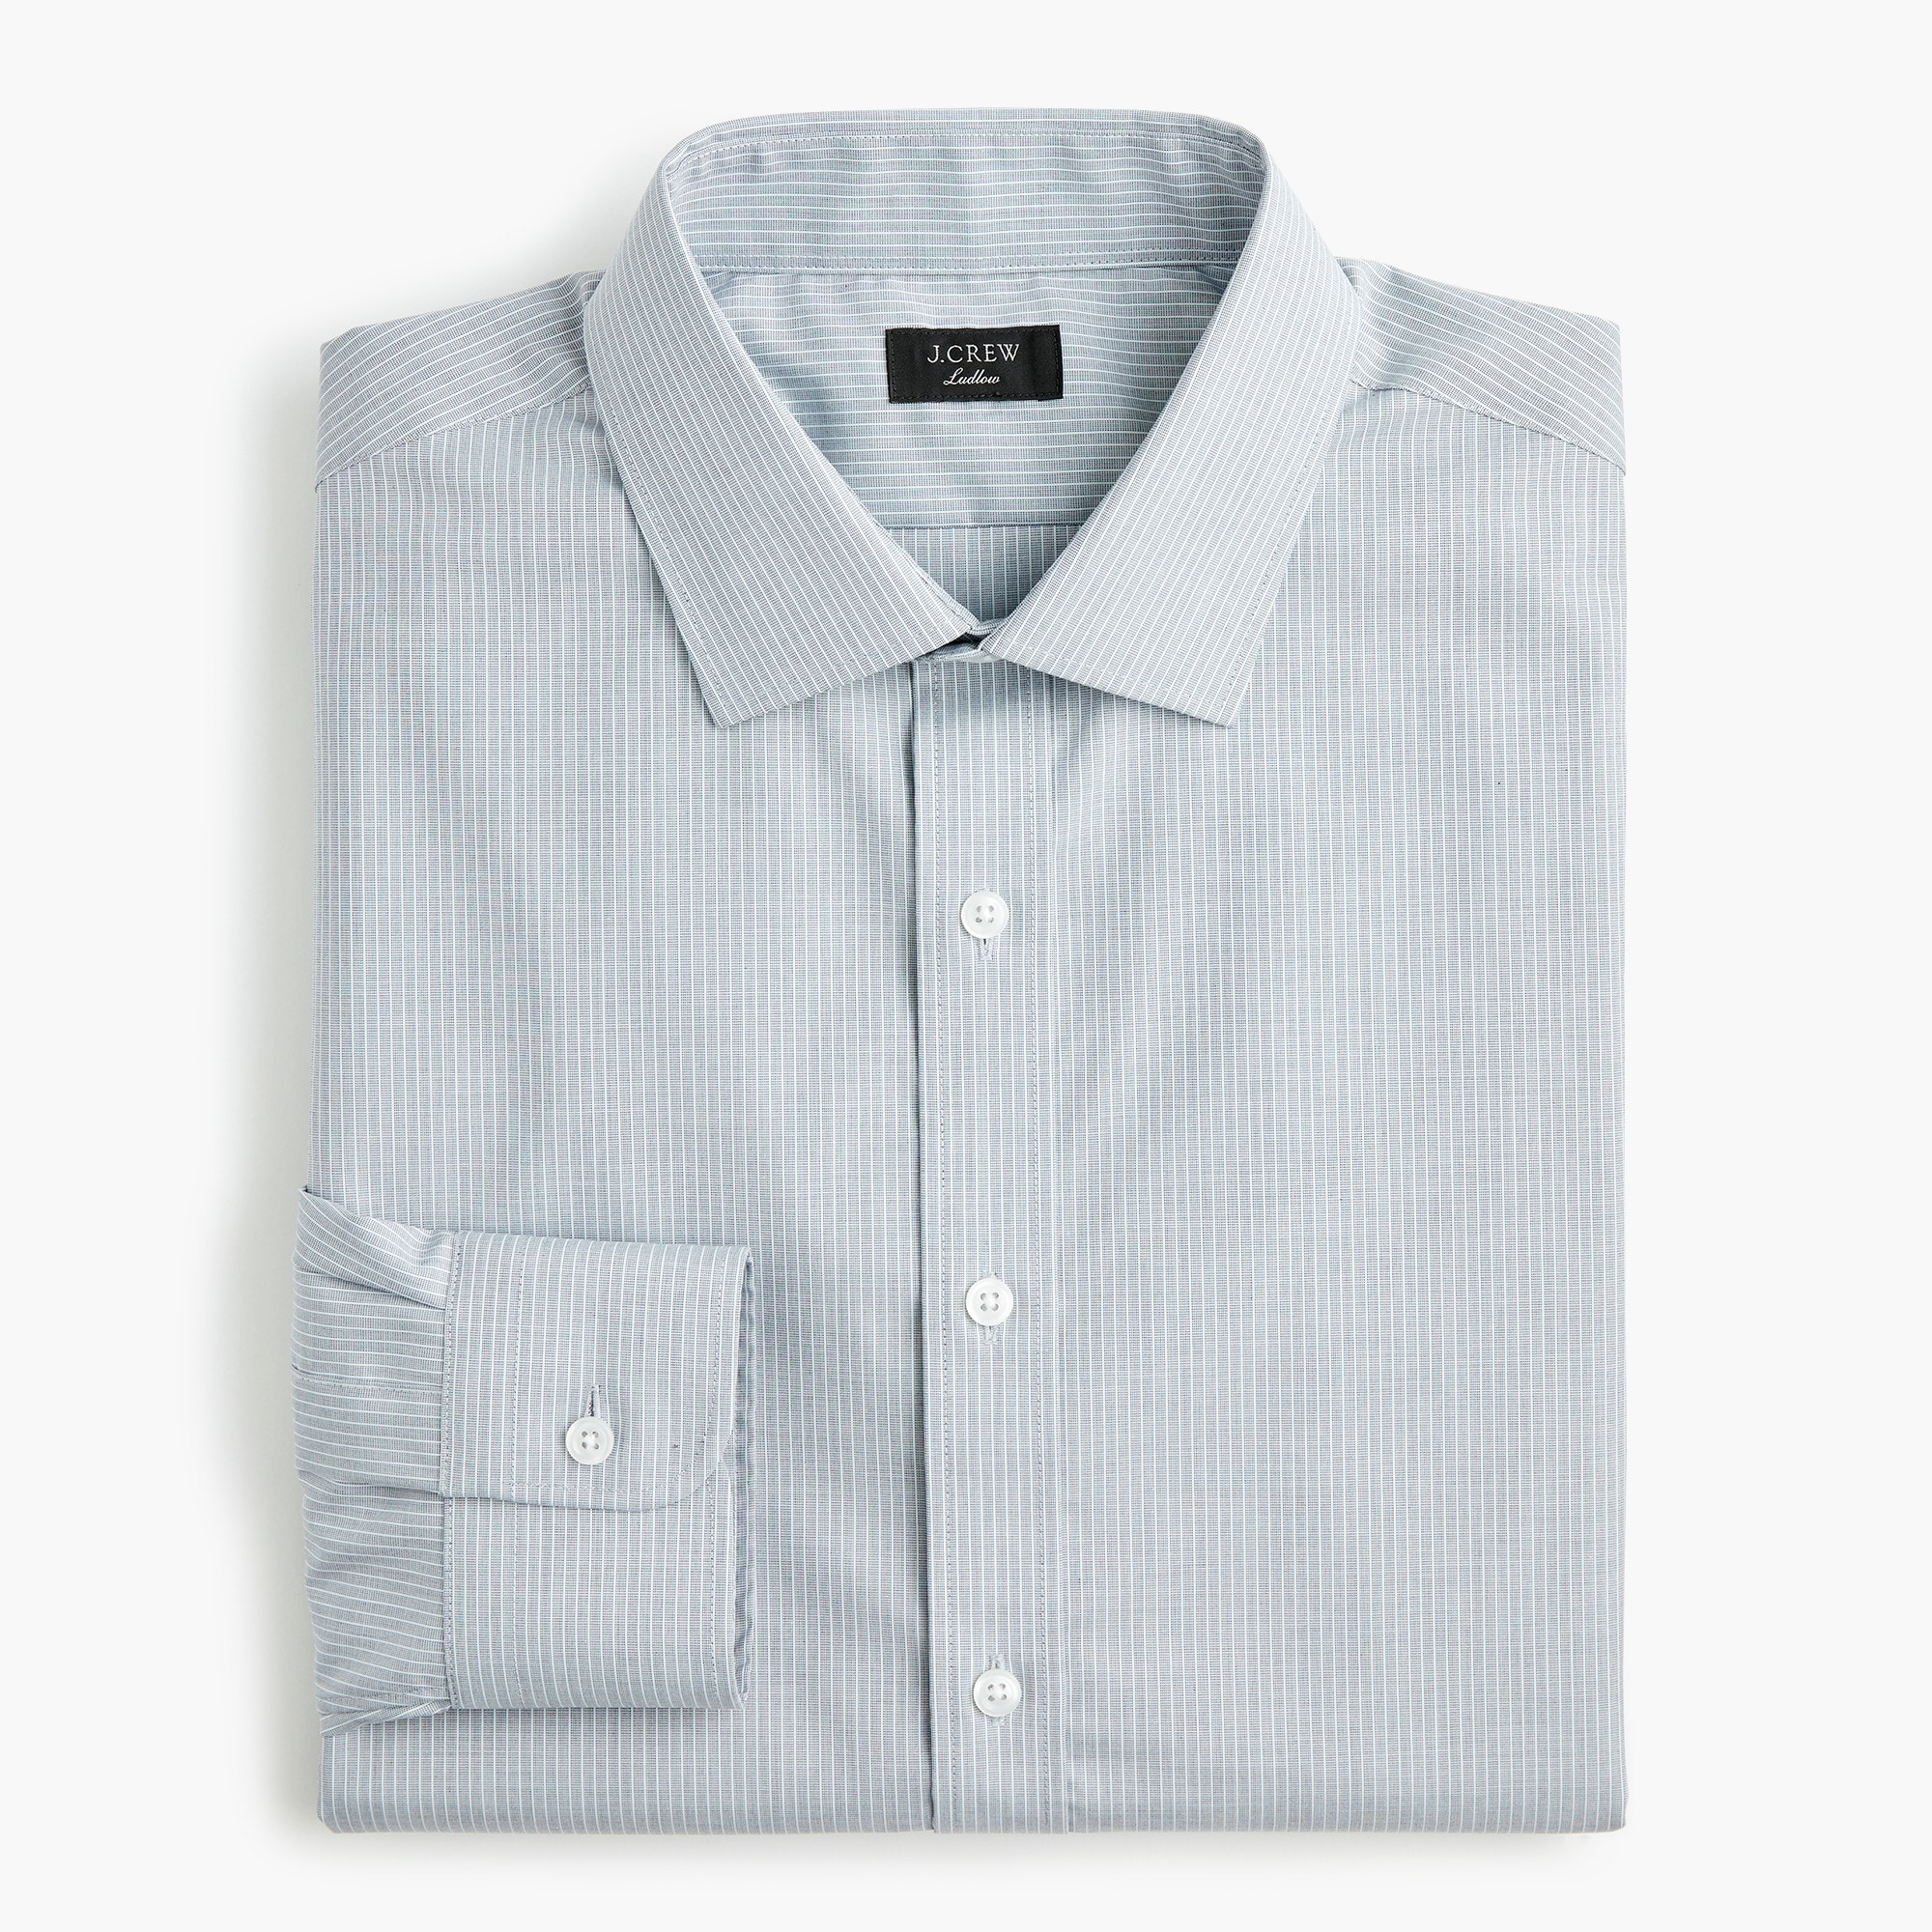 Ludlow Slim-fit stretch two-ply easy-care cotton dress shirt in stripe